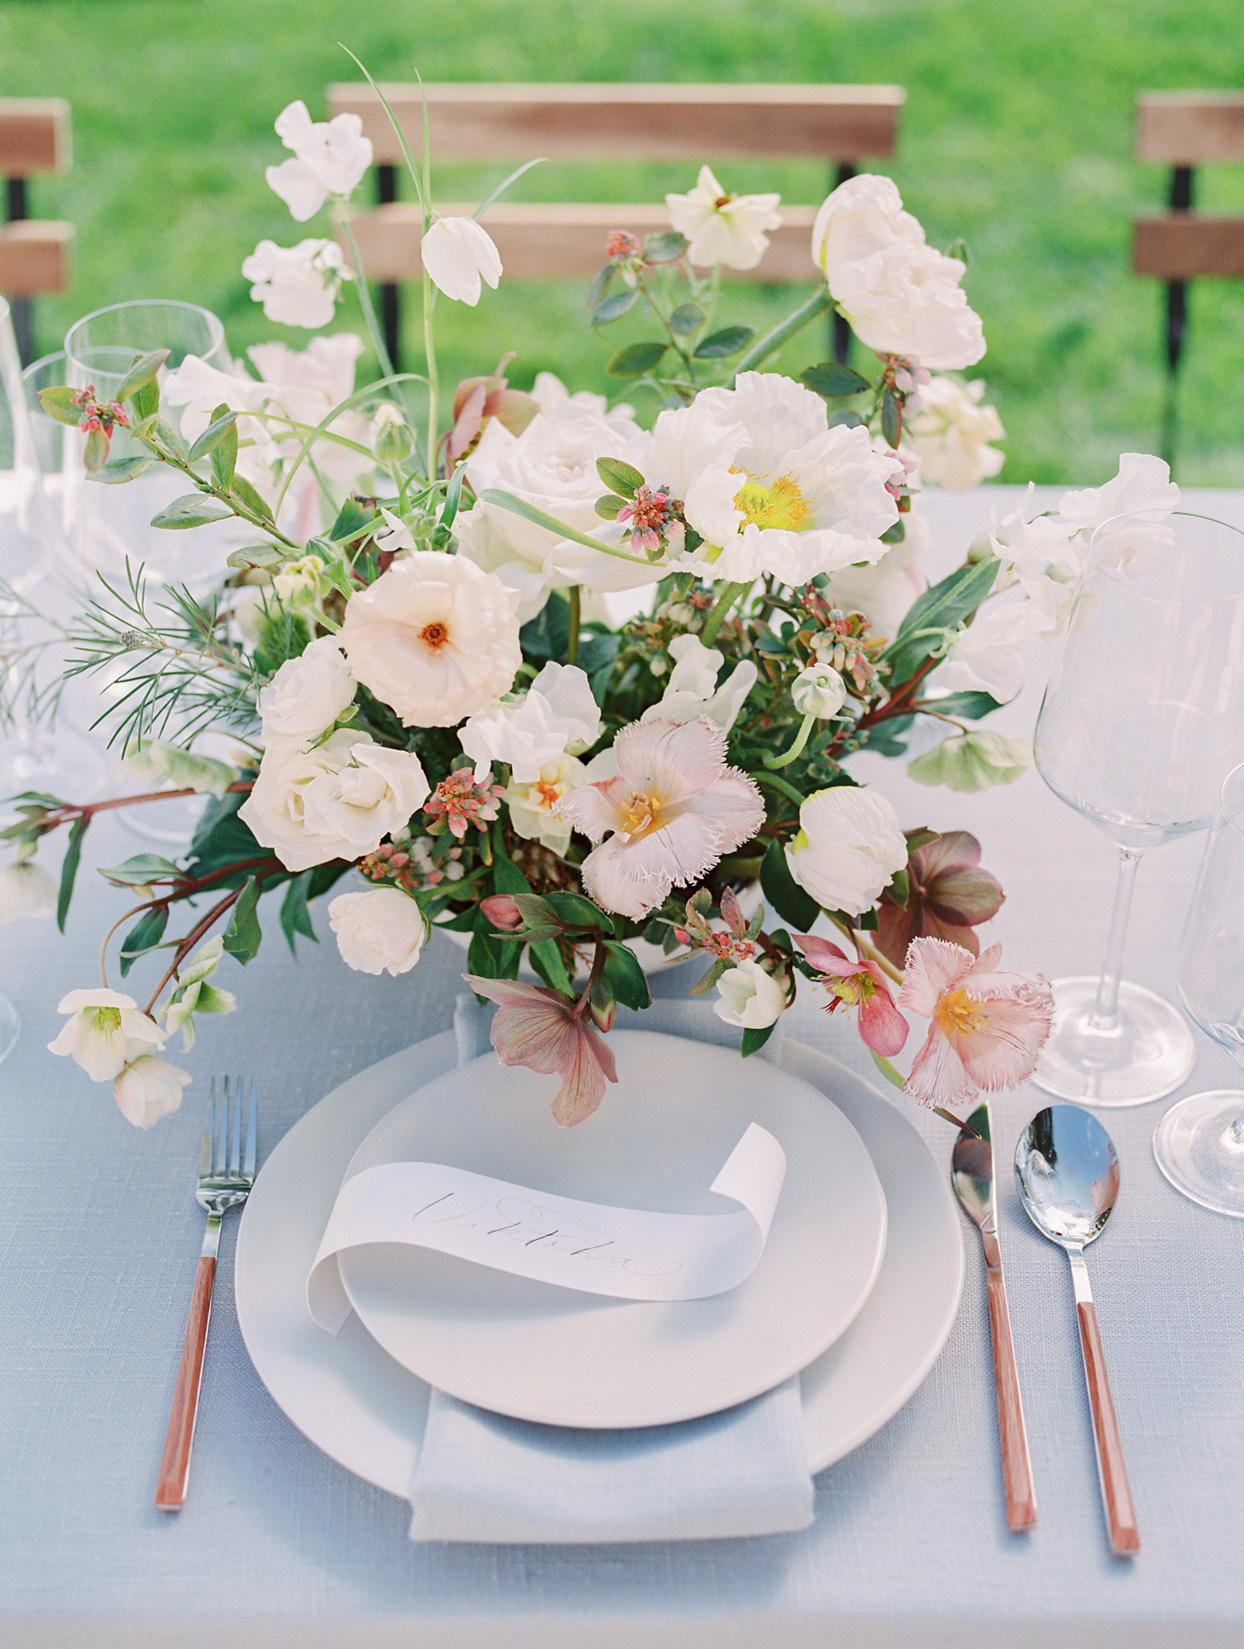 elegant wedding place setting with white places and pastels